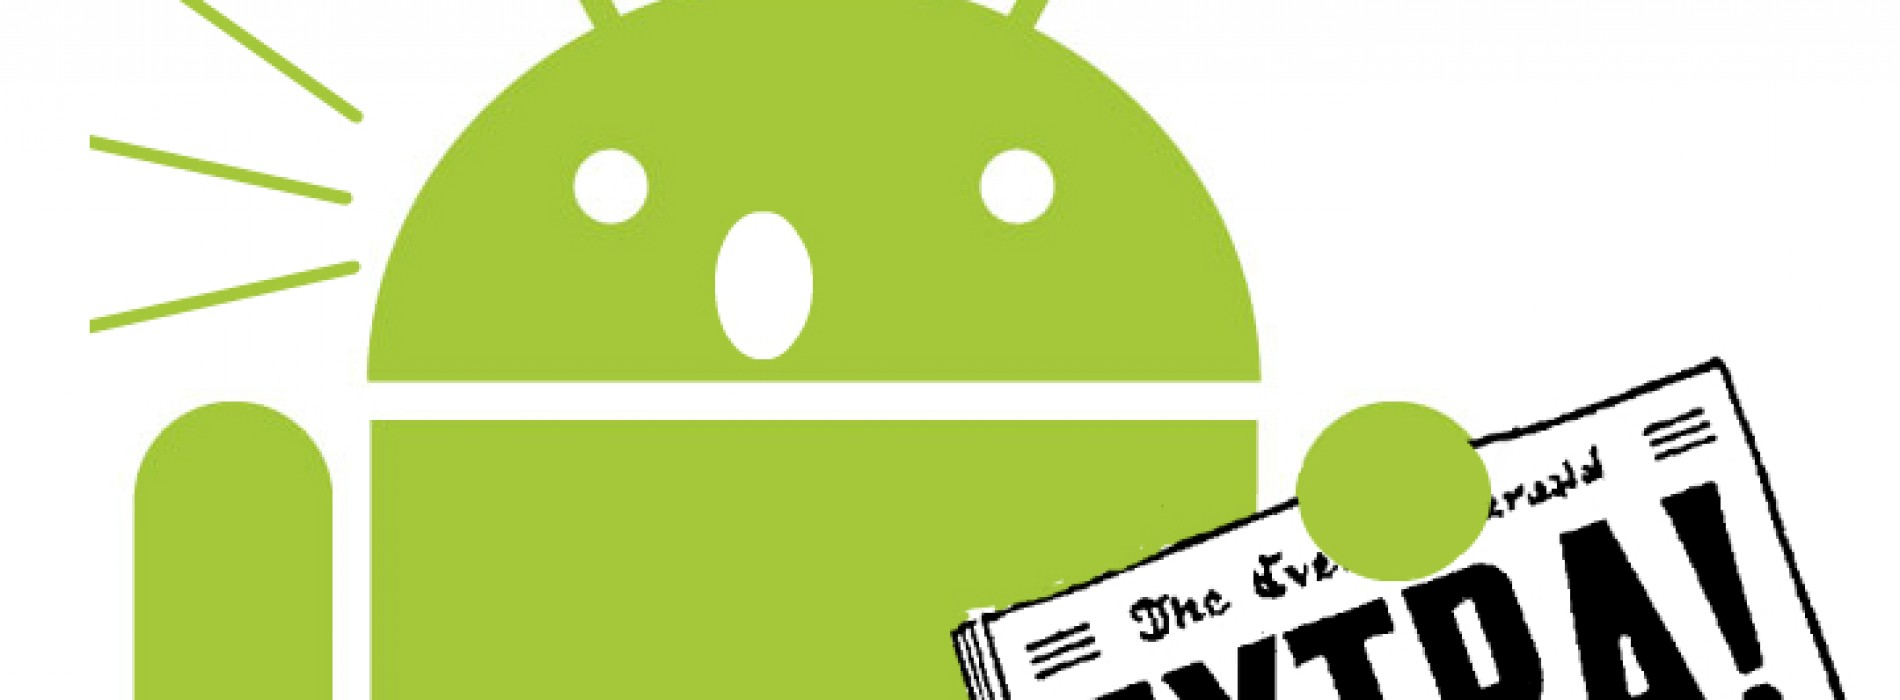 6 of the best Android apps for reading magazines and newspapers